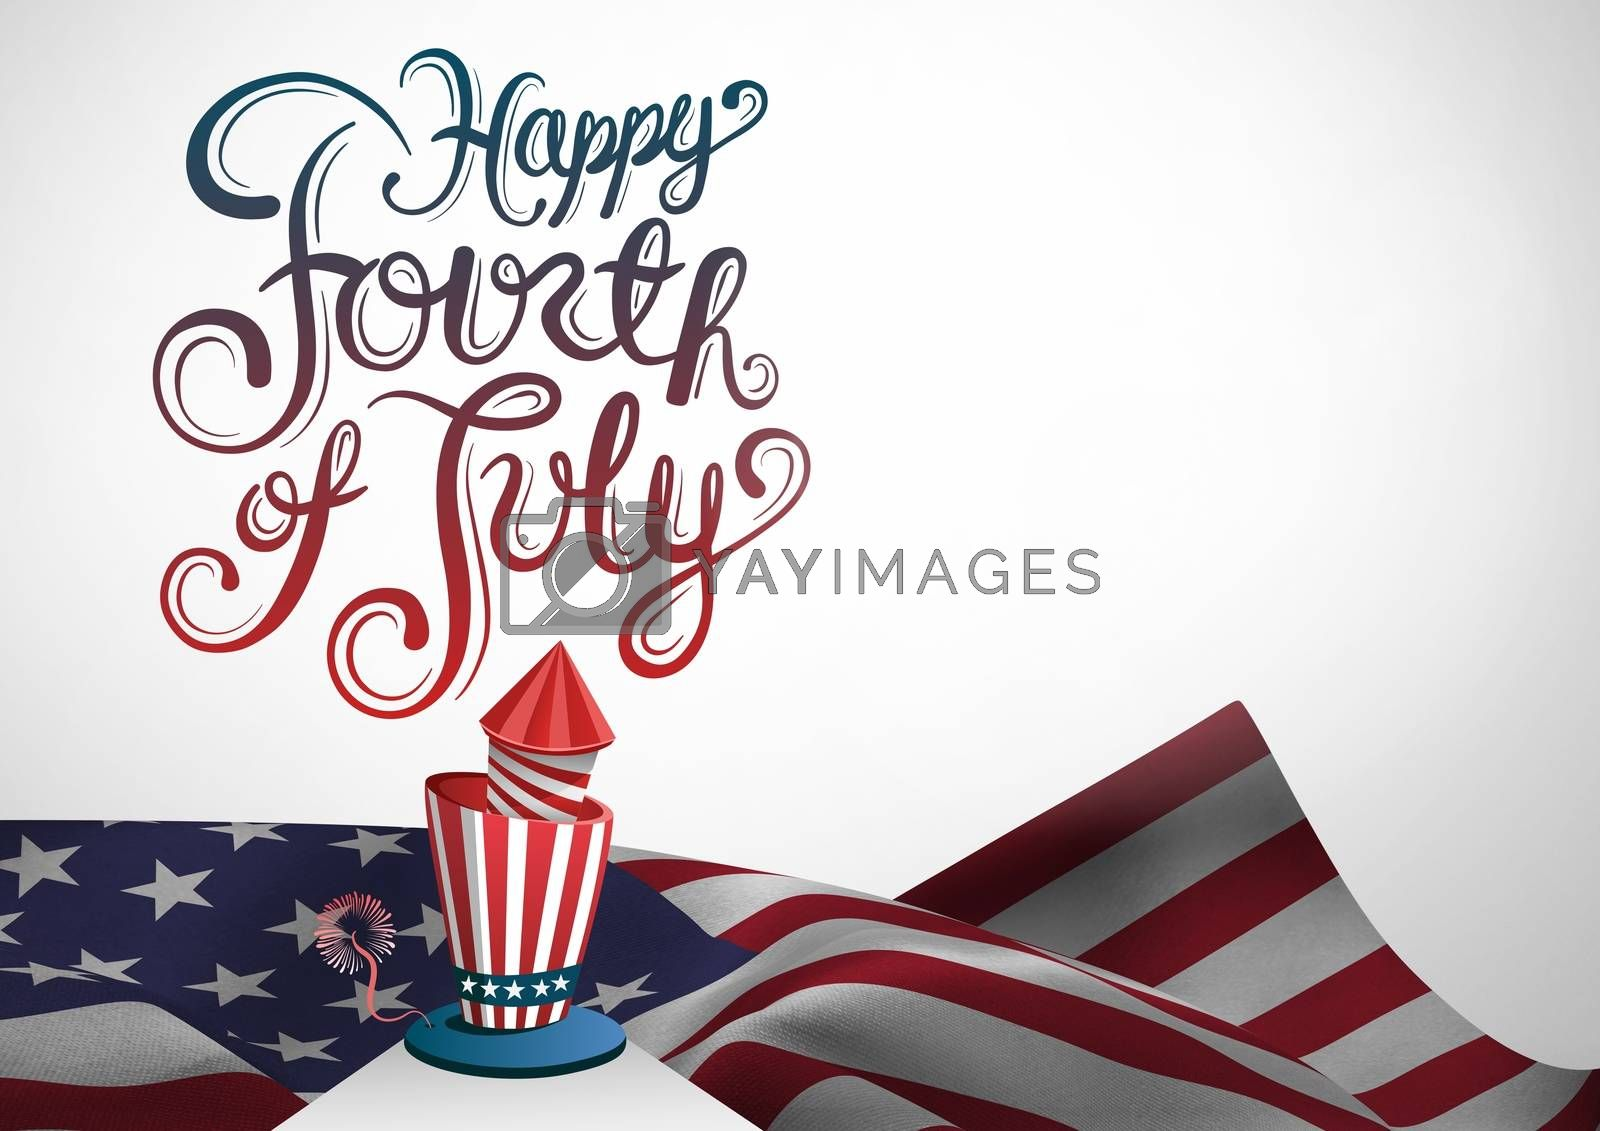 Digital composite of Composite image for the 4th of July with american flag